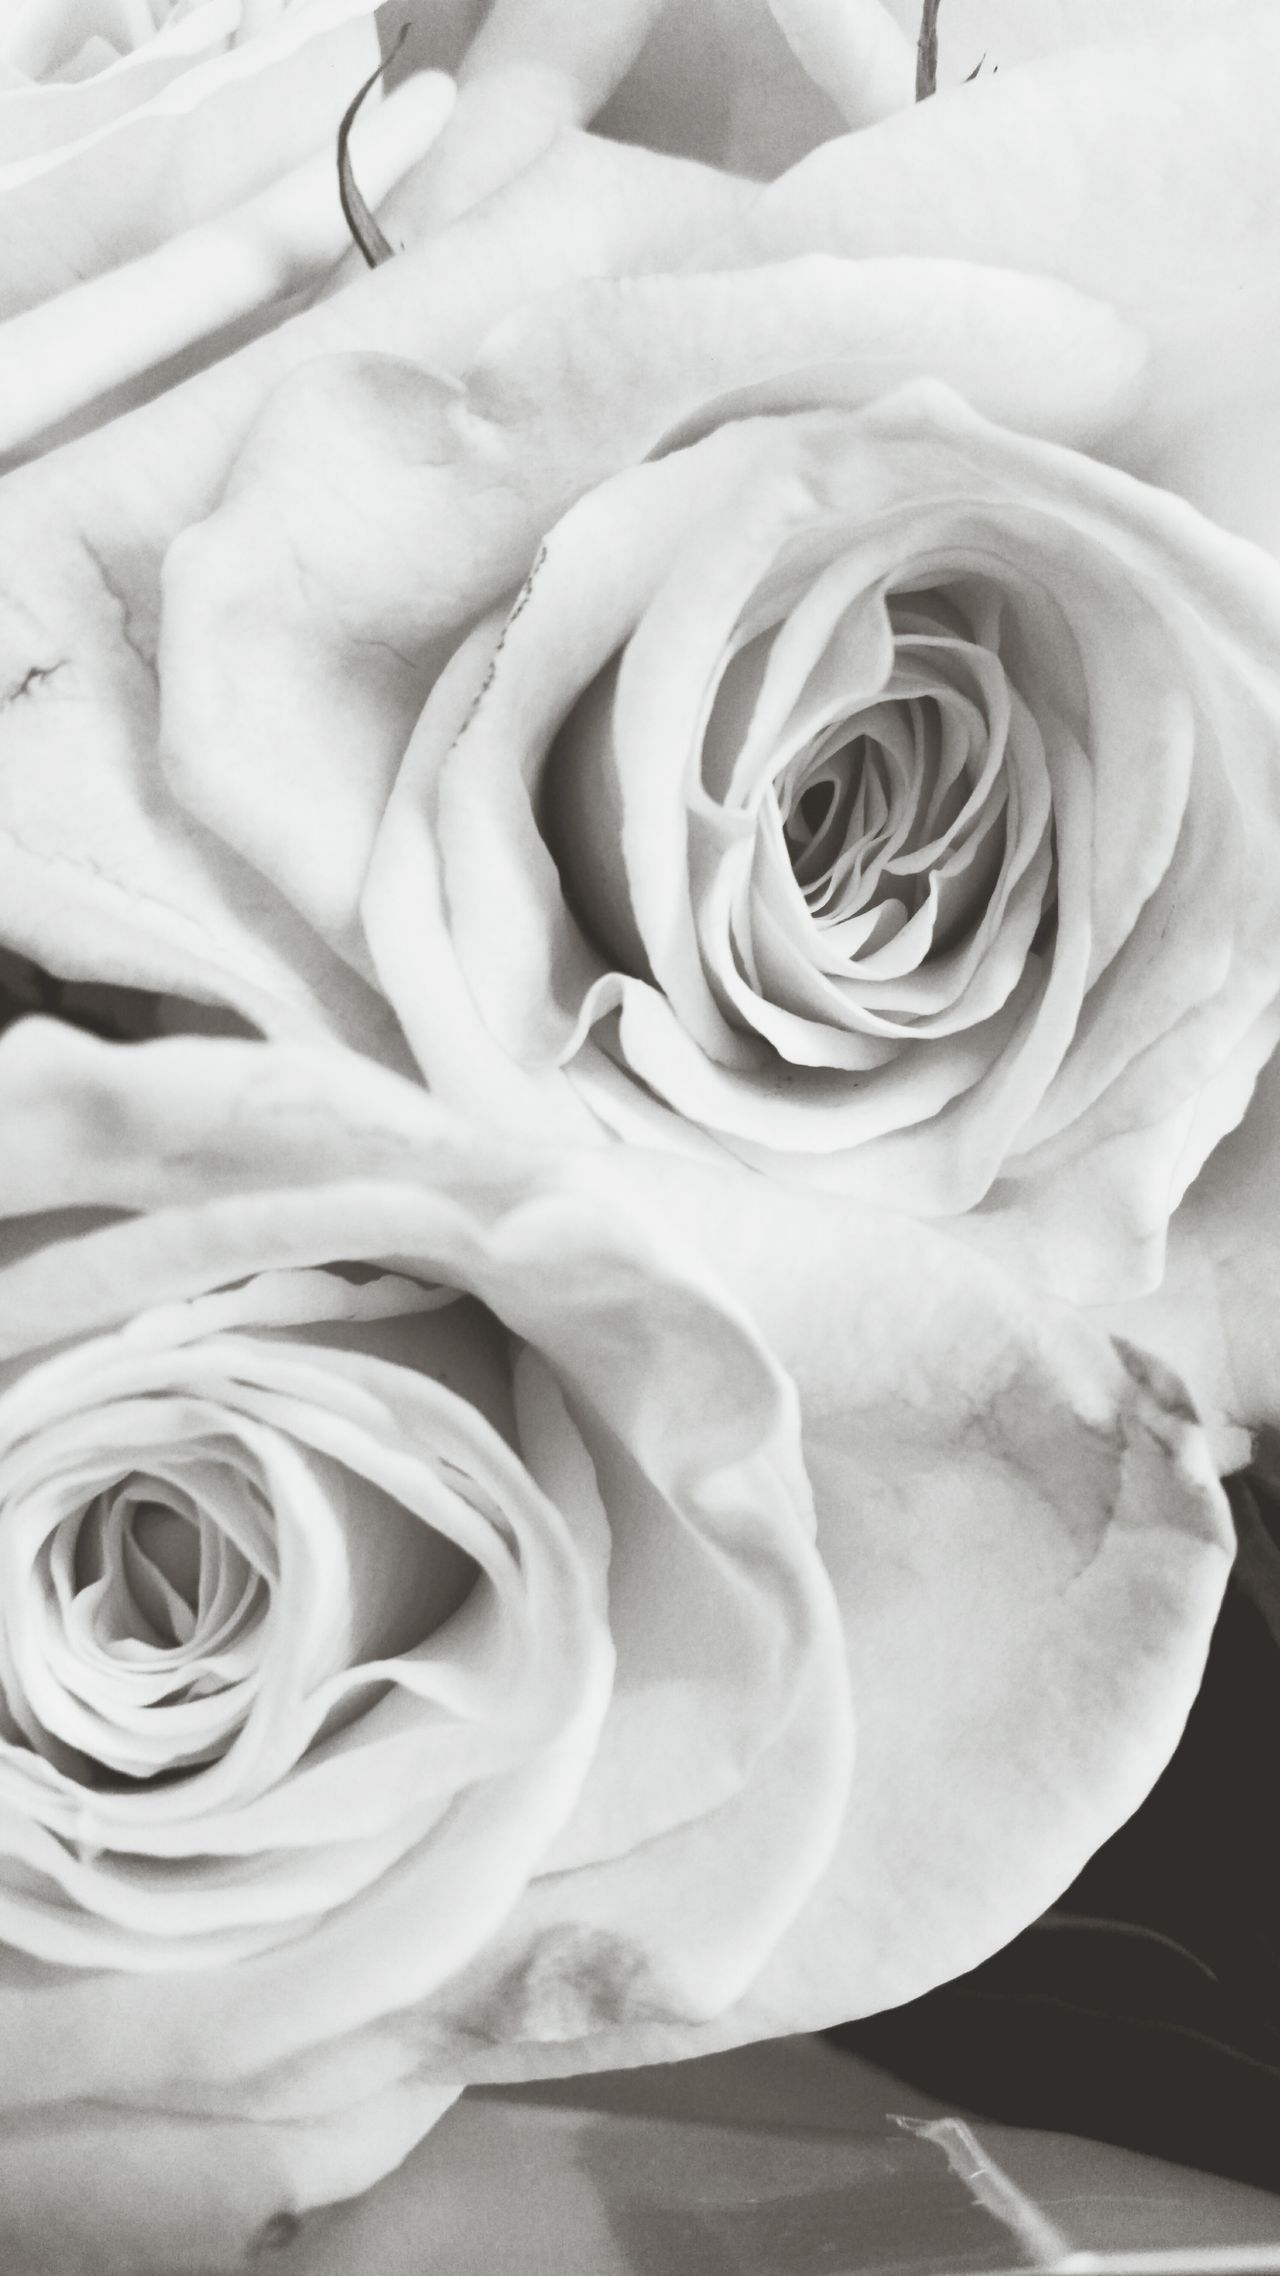 White Album Black & White Delicate Petals Flowerporn EyeEm Nature Lover Philadelphia Pennsylvania City Of Brotherly Love My Quirky Style Delicate Flowers Roses Intricate Nature Perspective White Flower